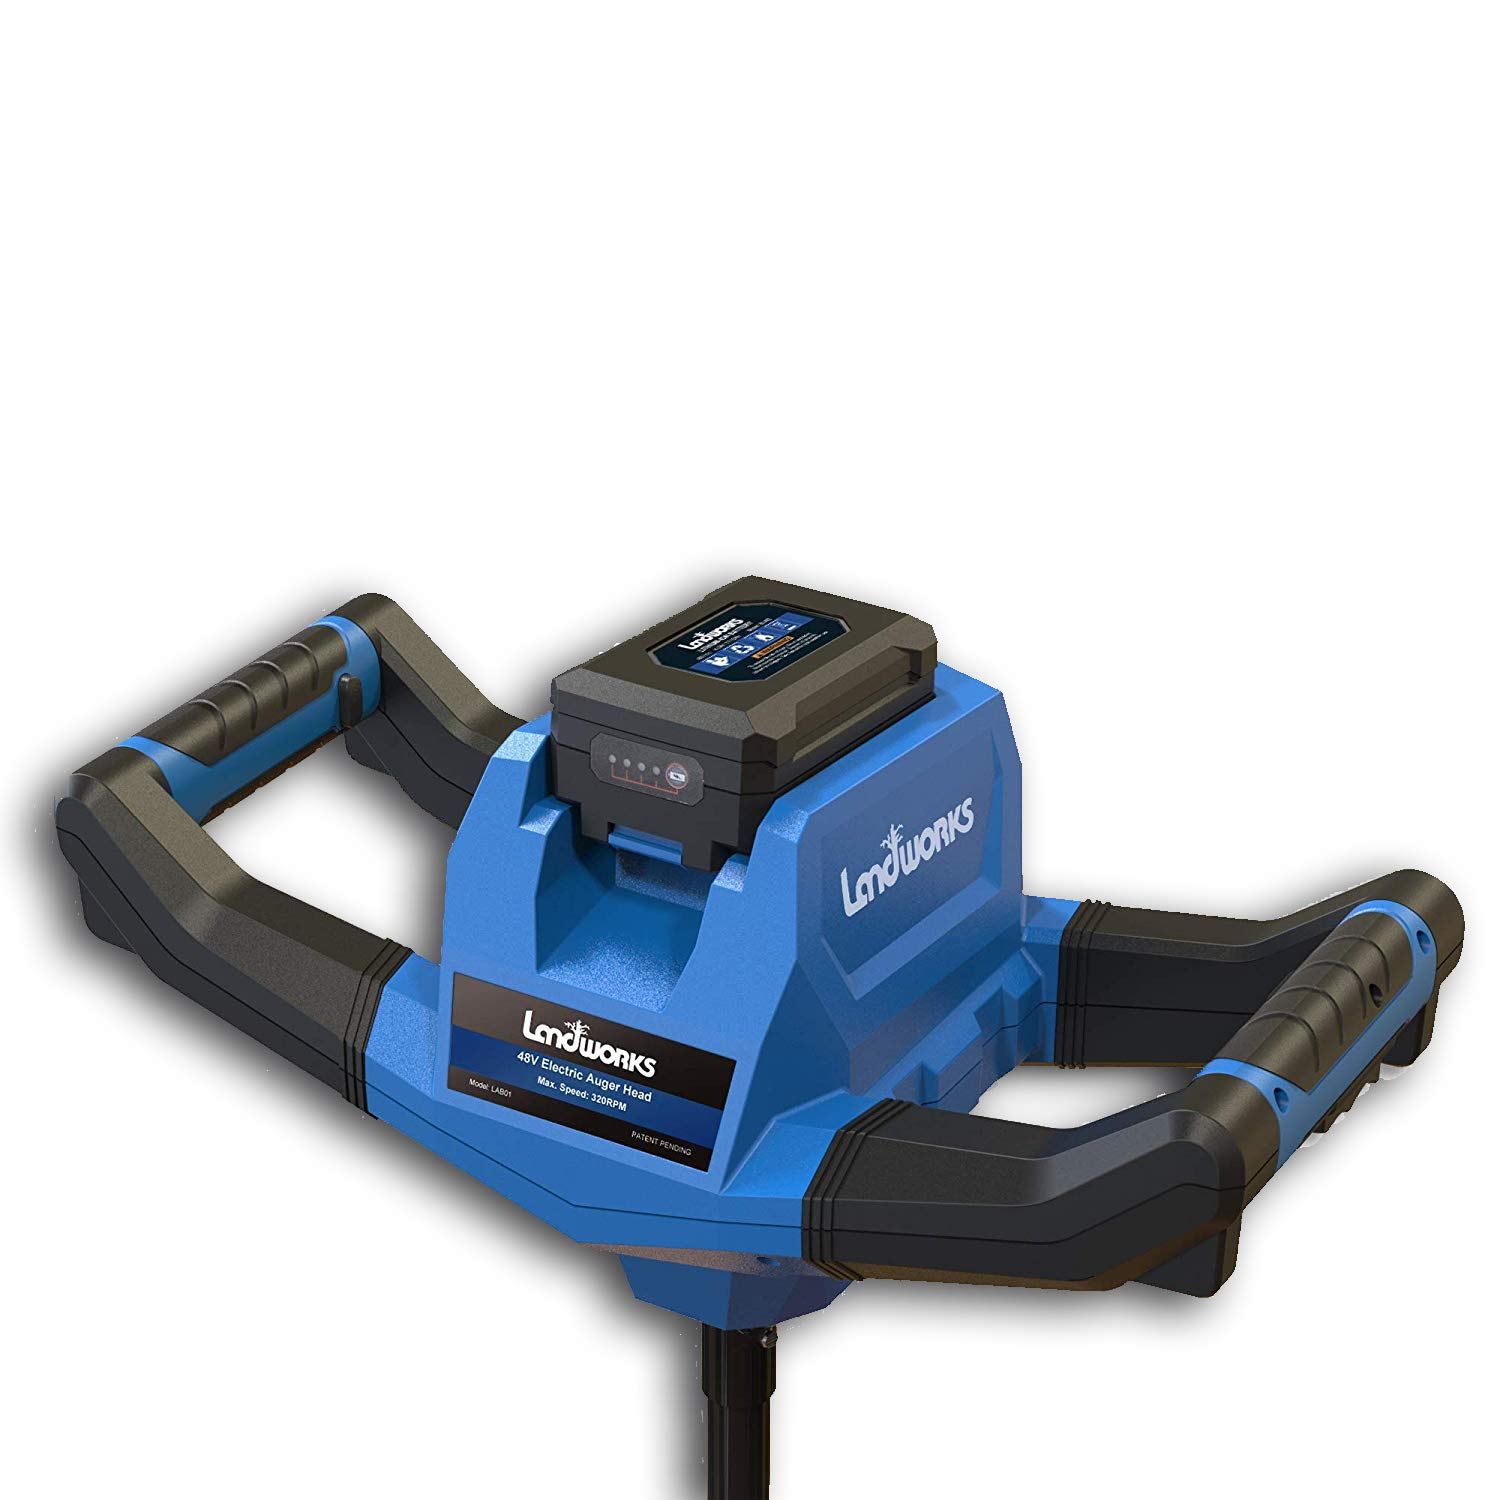 Landworks Eco Friendly Electric Power Head Brushless